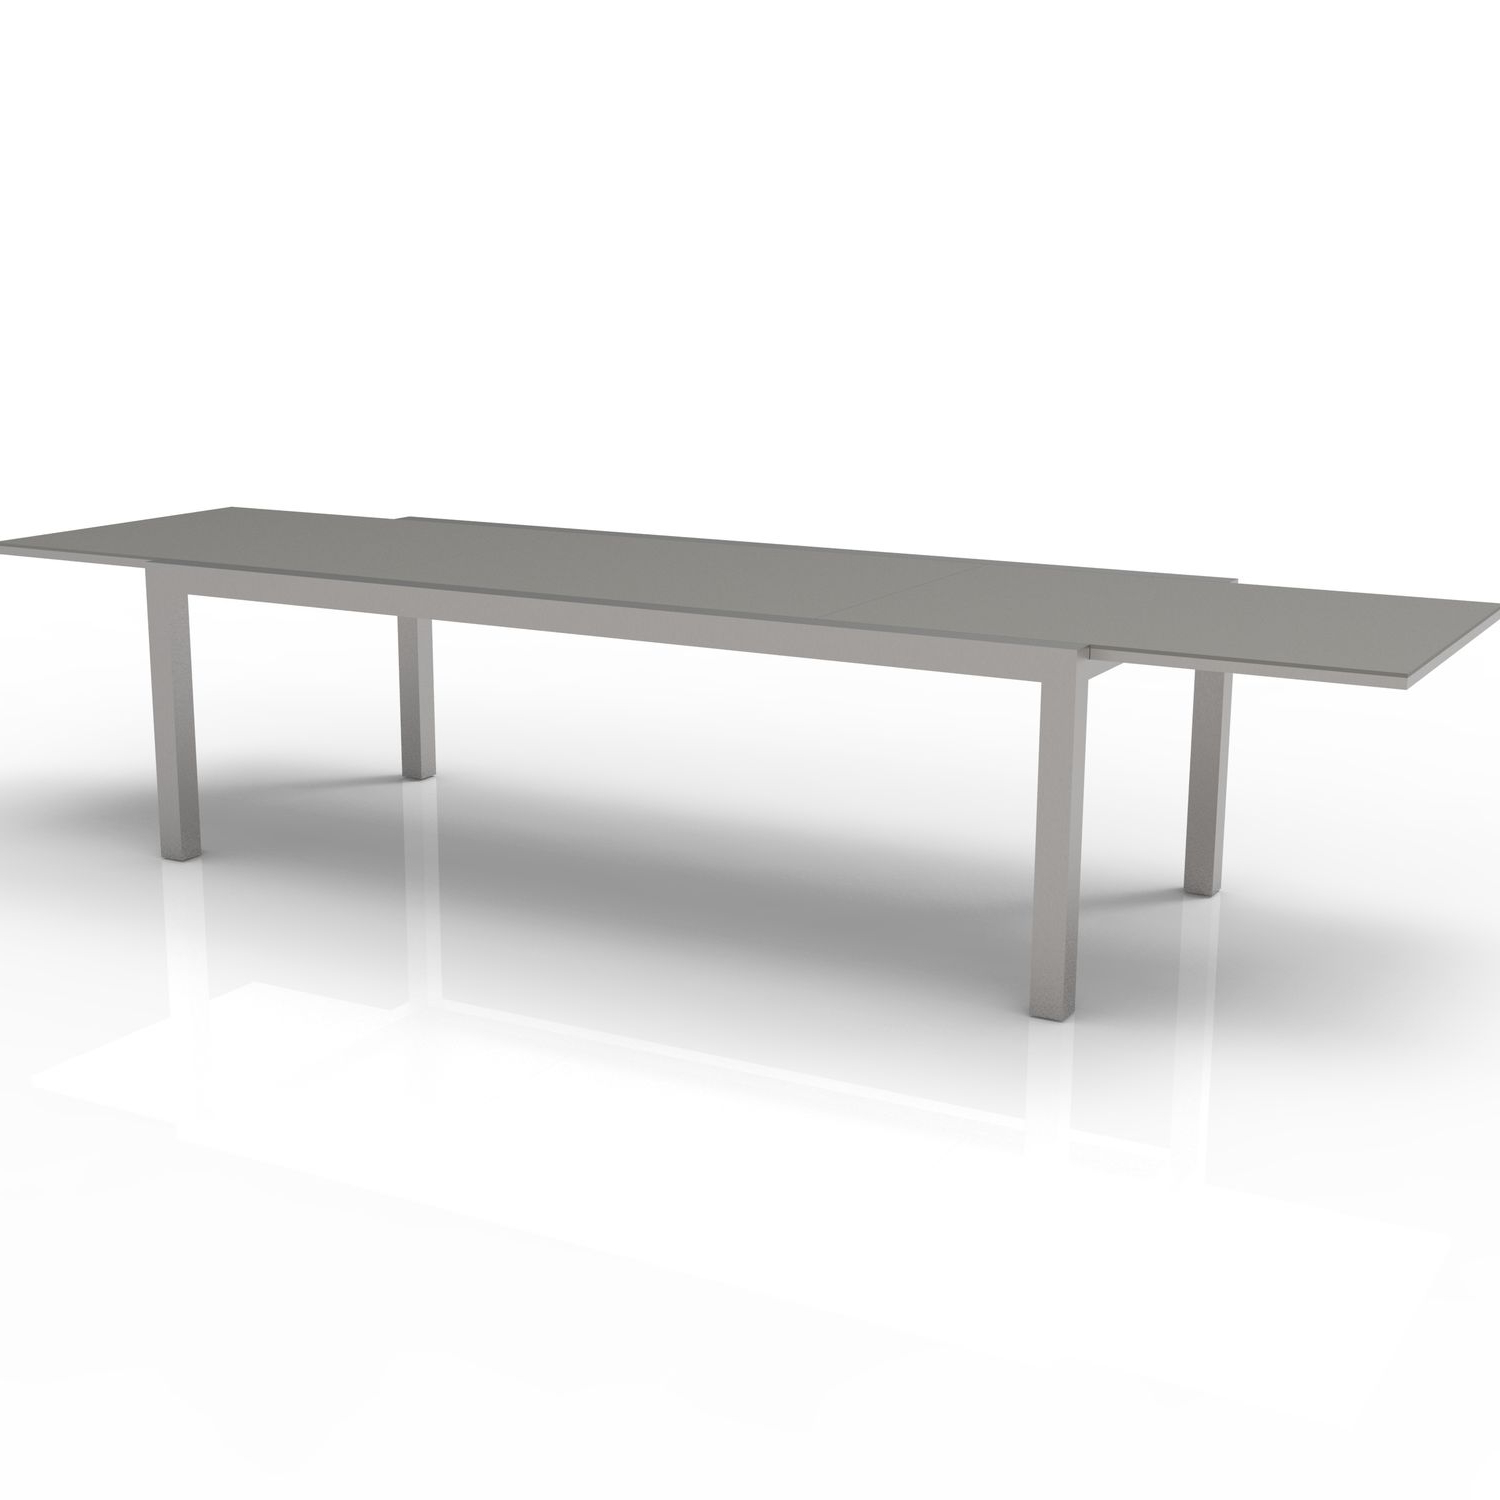 Best And Newest Contemporary Dining Table / Glass / Stainless Steel Pertaining To Steel And Glass Rectangle Dining Tables (Gallery 17 of 30)